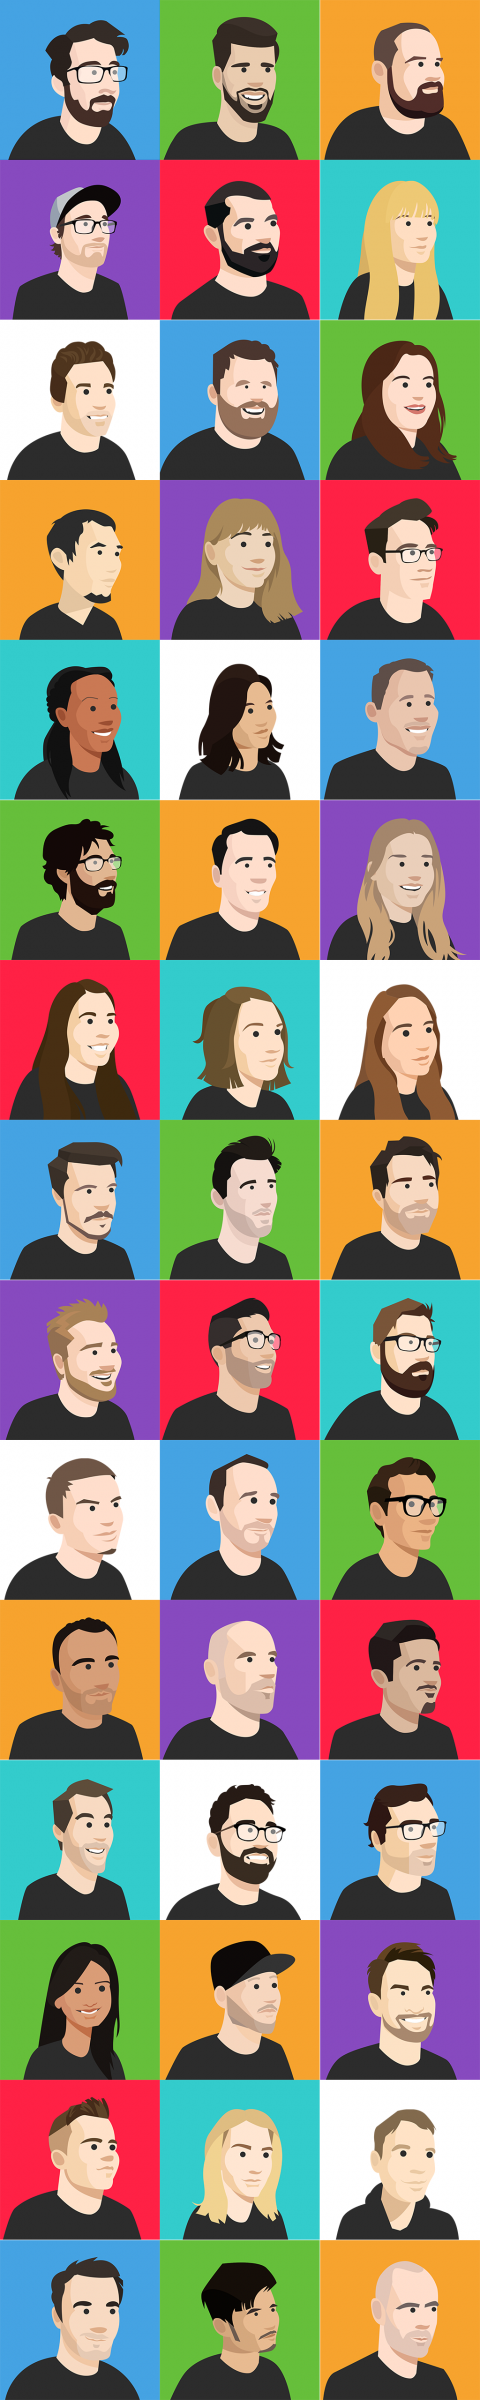 employeeavatars